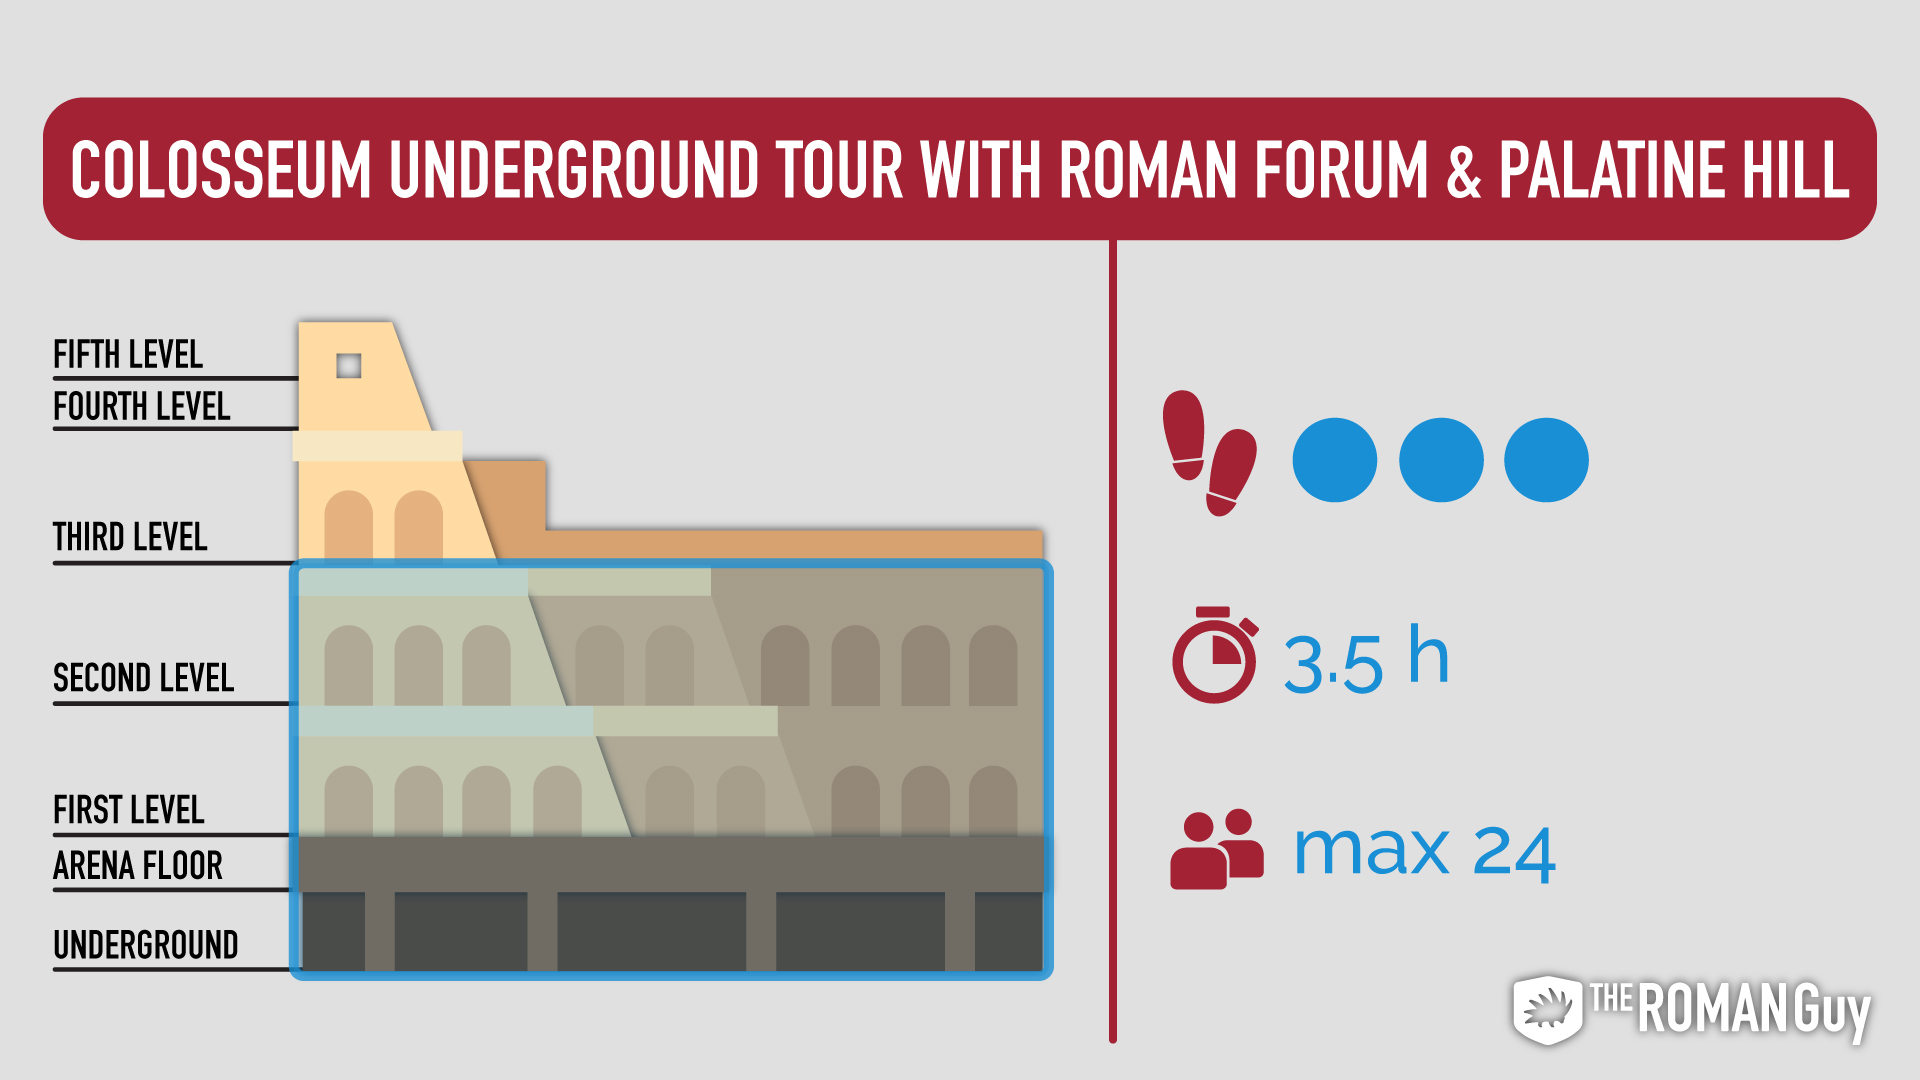 Colosseum-underground-tour-with-roman-forum-and-palatine-hill-the-roman-guy